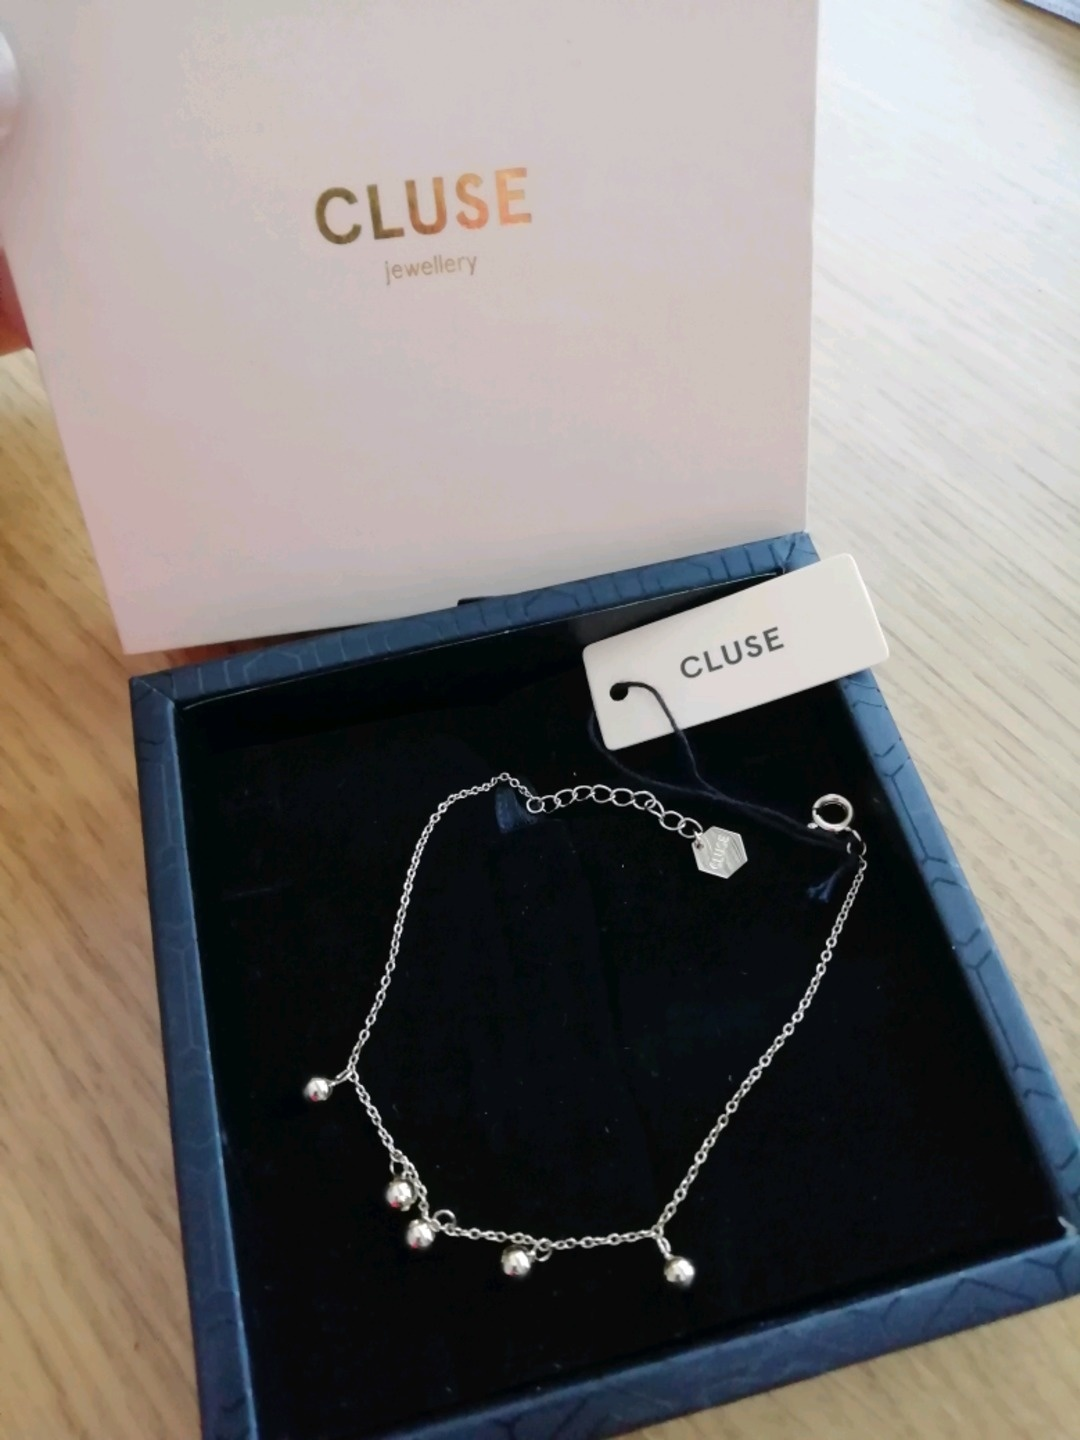 Women's jewellery & bracelets - CLUSE photo 1